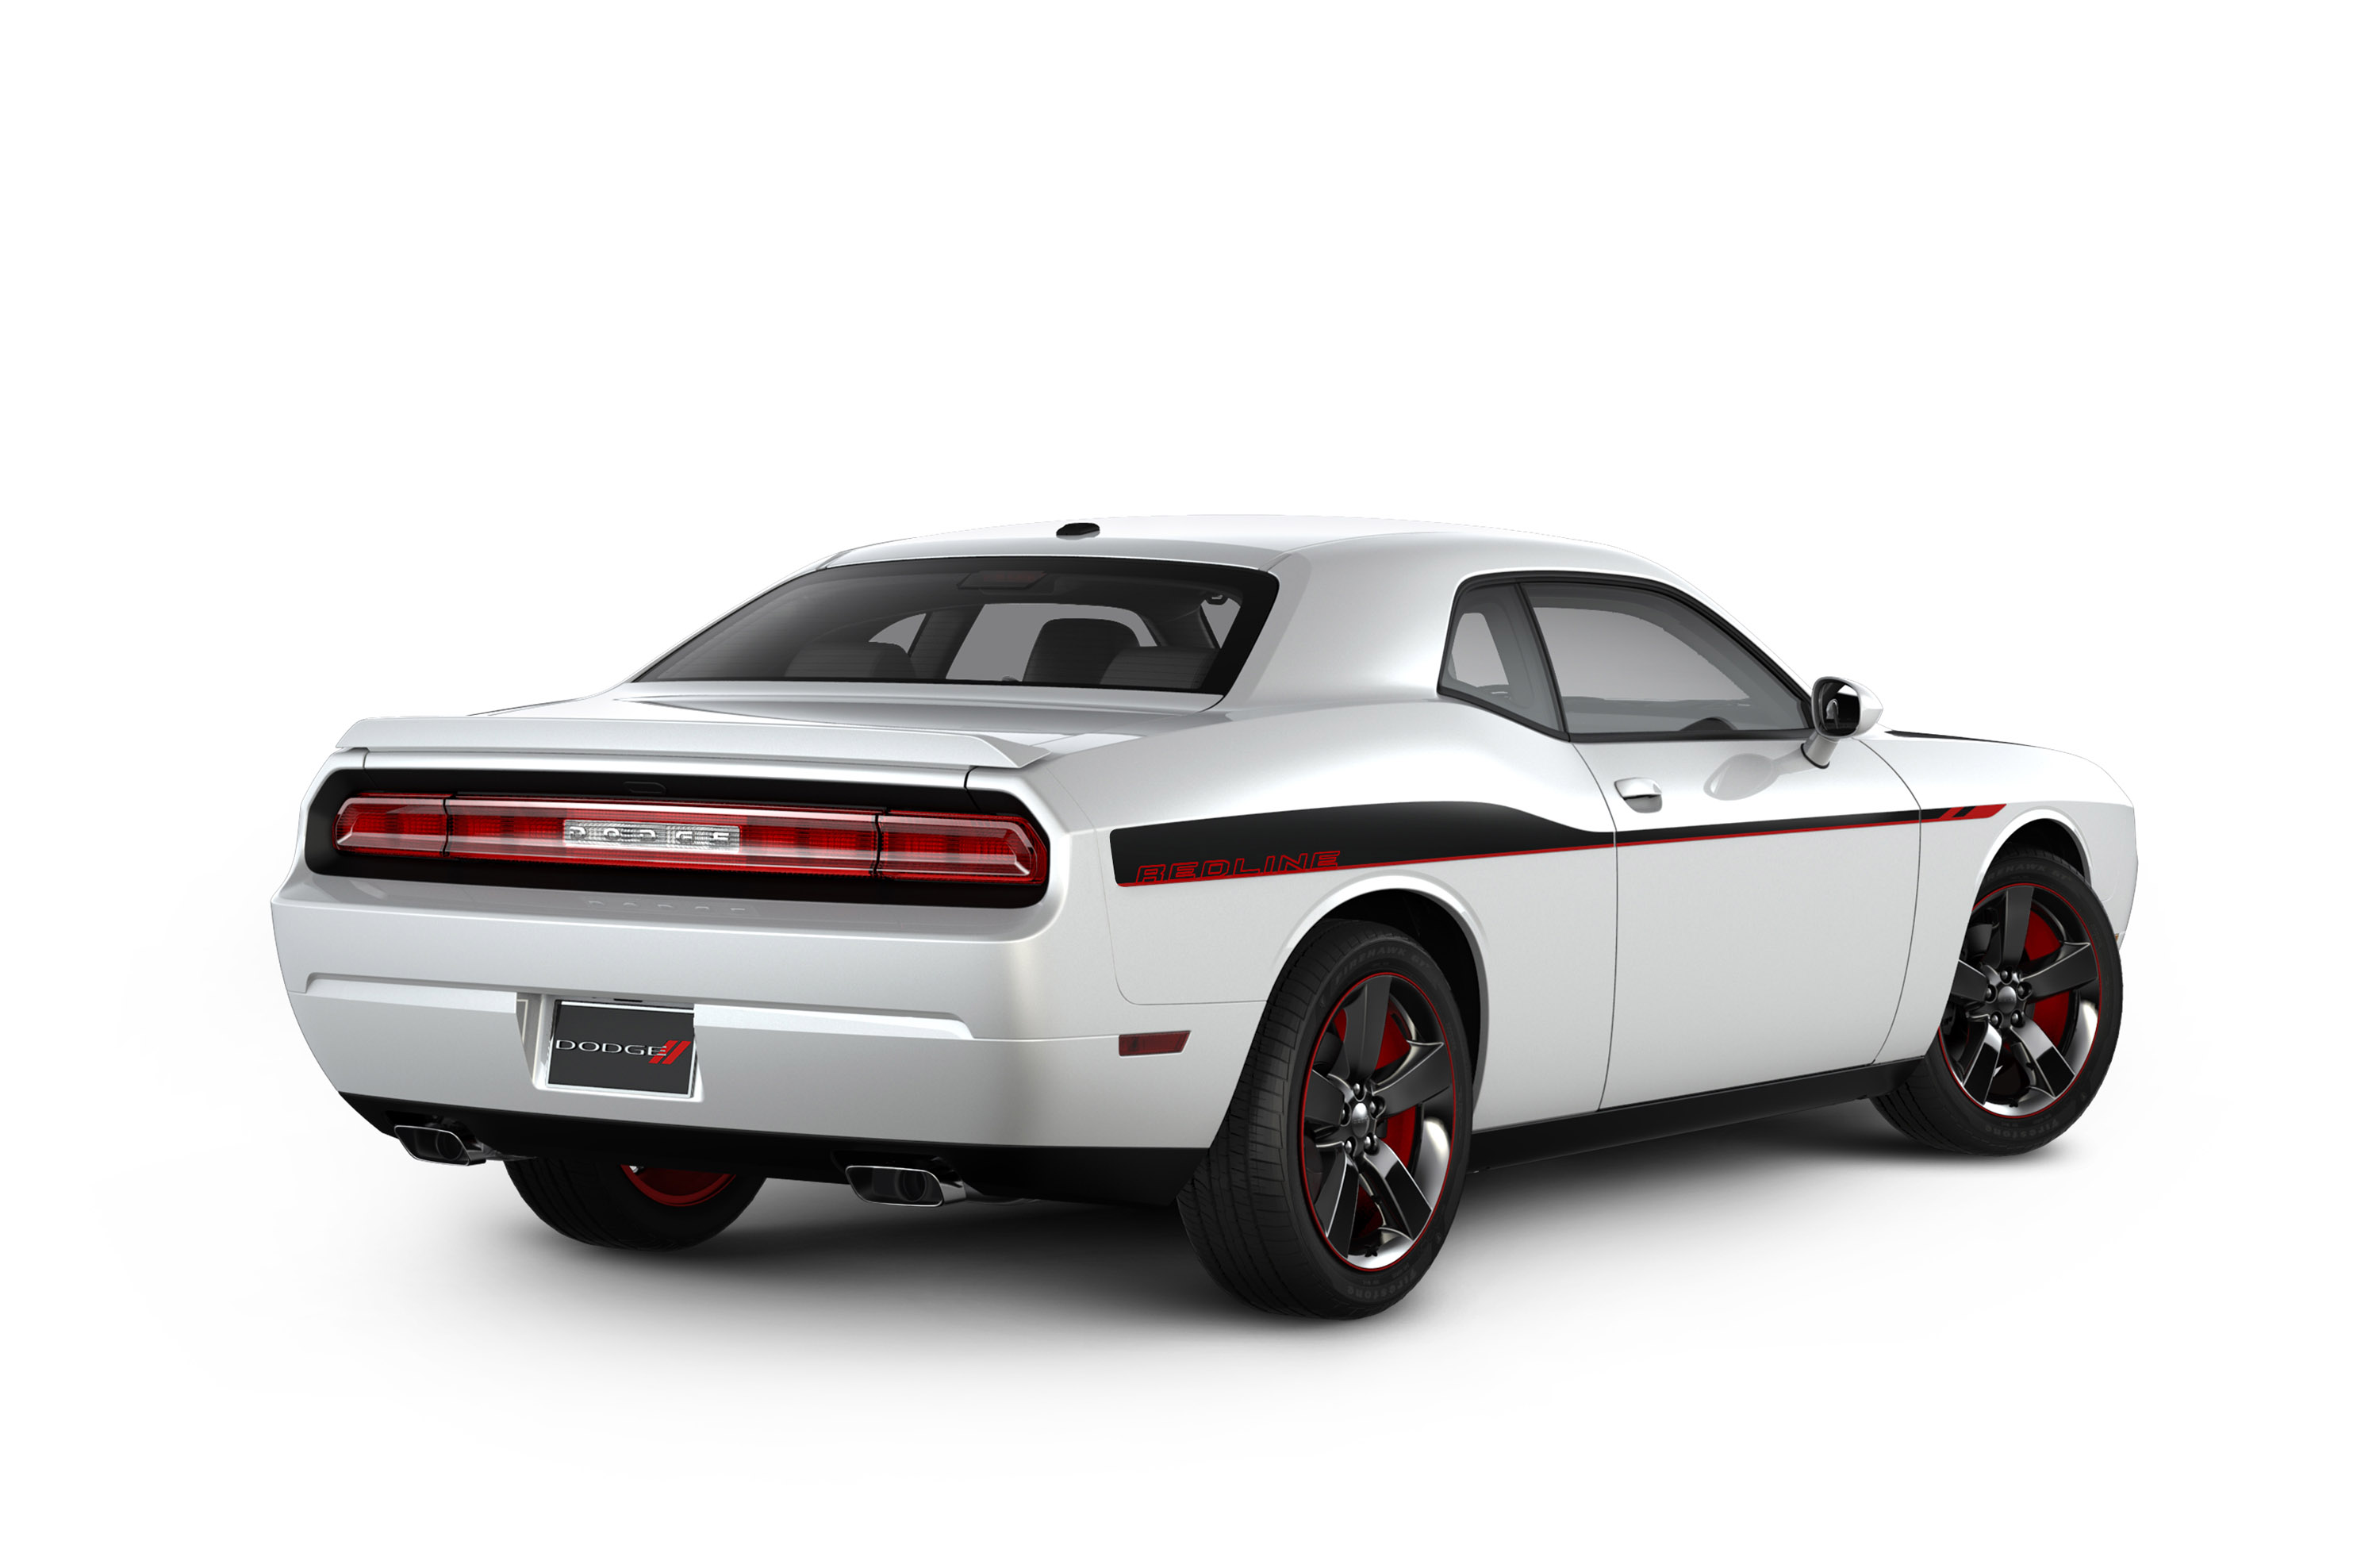 2013 dodge challenger rt redline 9 of 10. Cars Review. Best American Auto & Cars Review